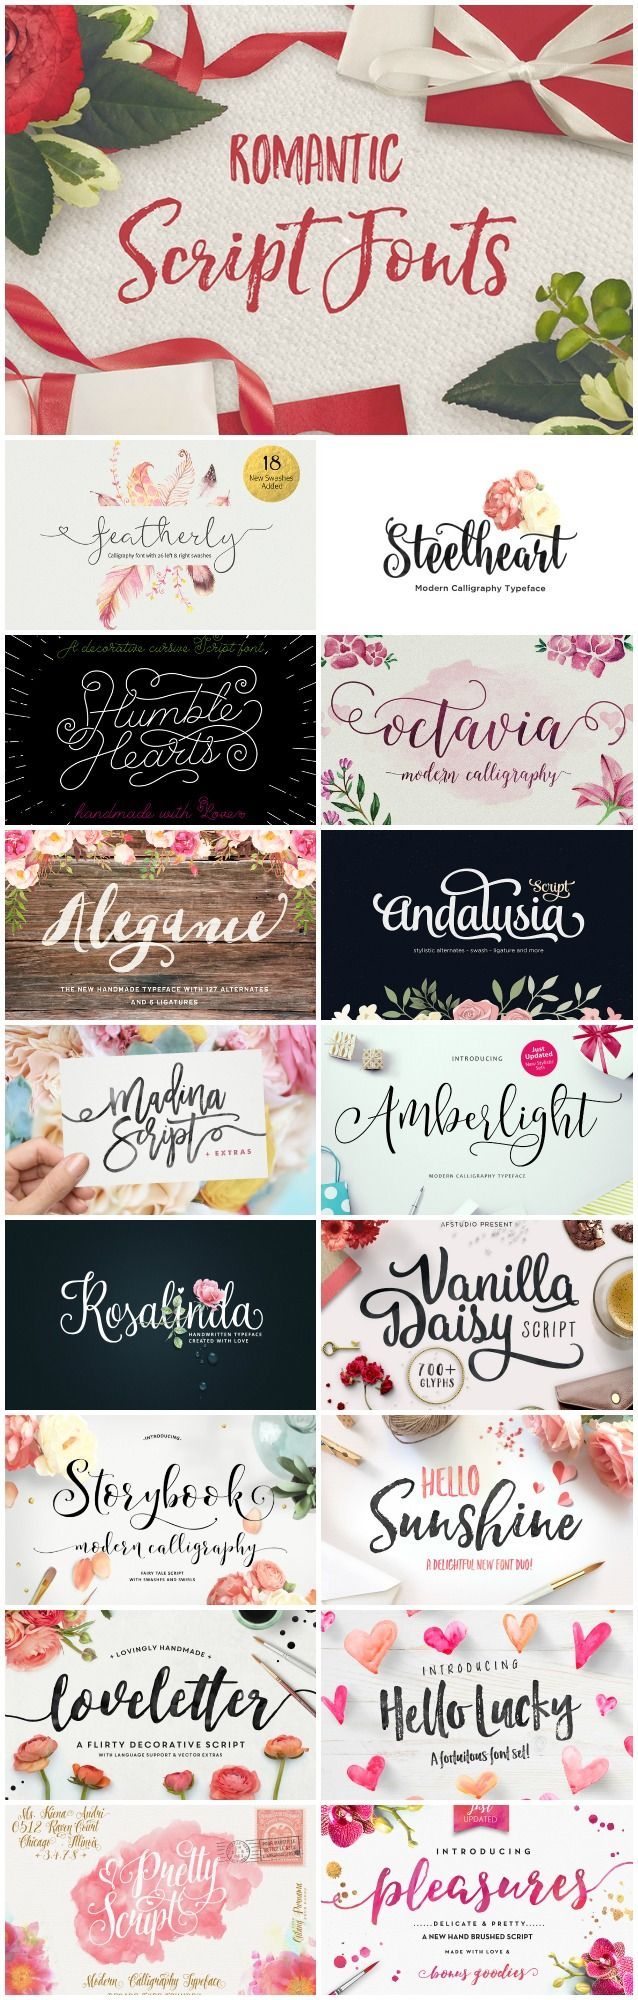 Looking for a delicate, script font for your next print design project? Whether youre working on a set of custom Valentines Day